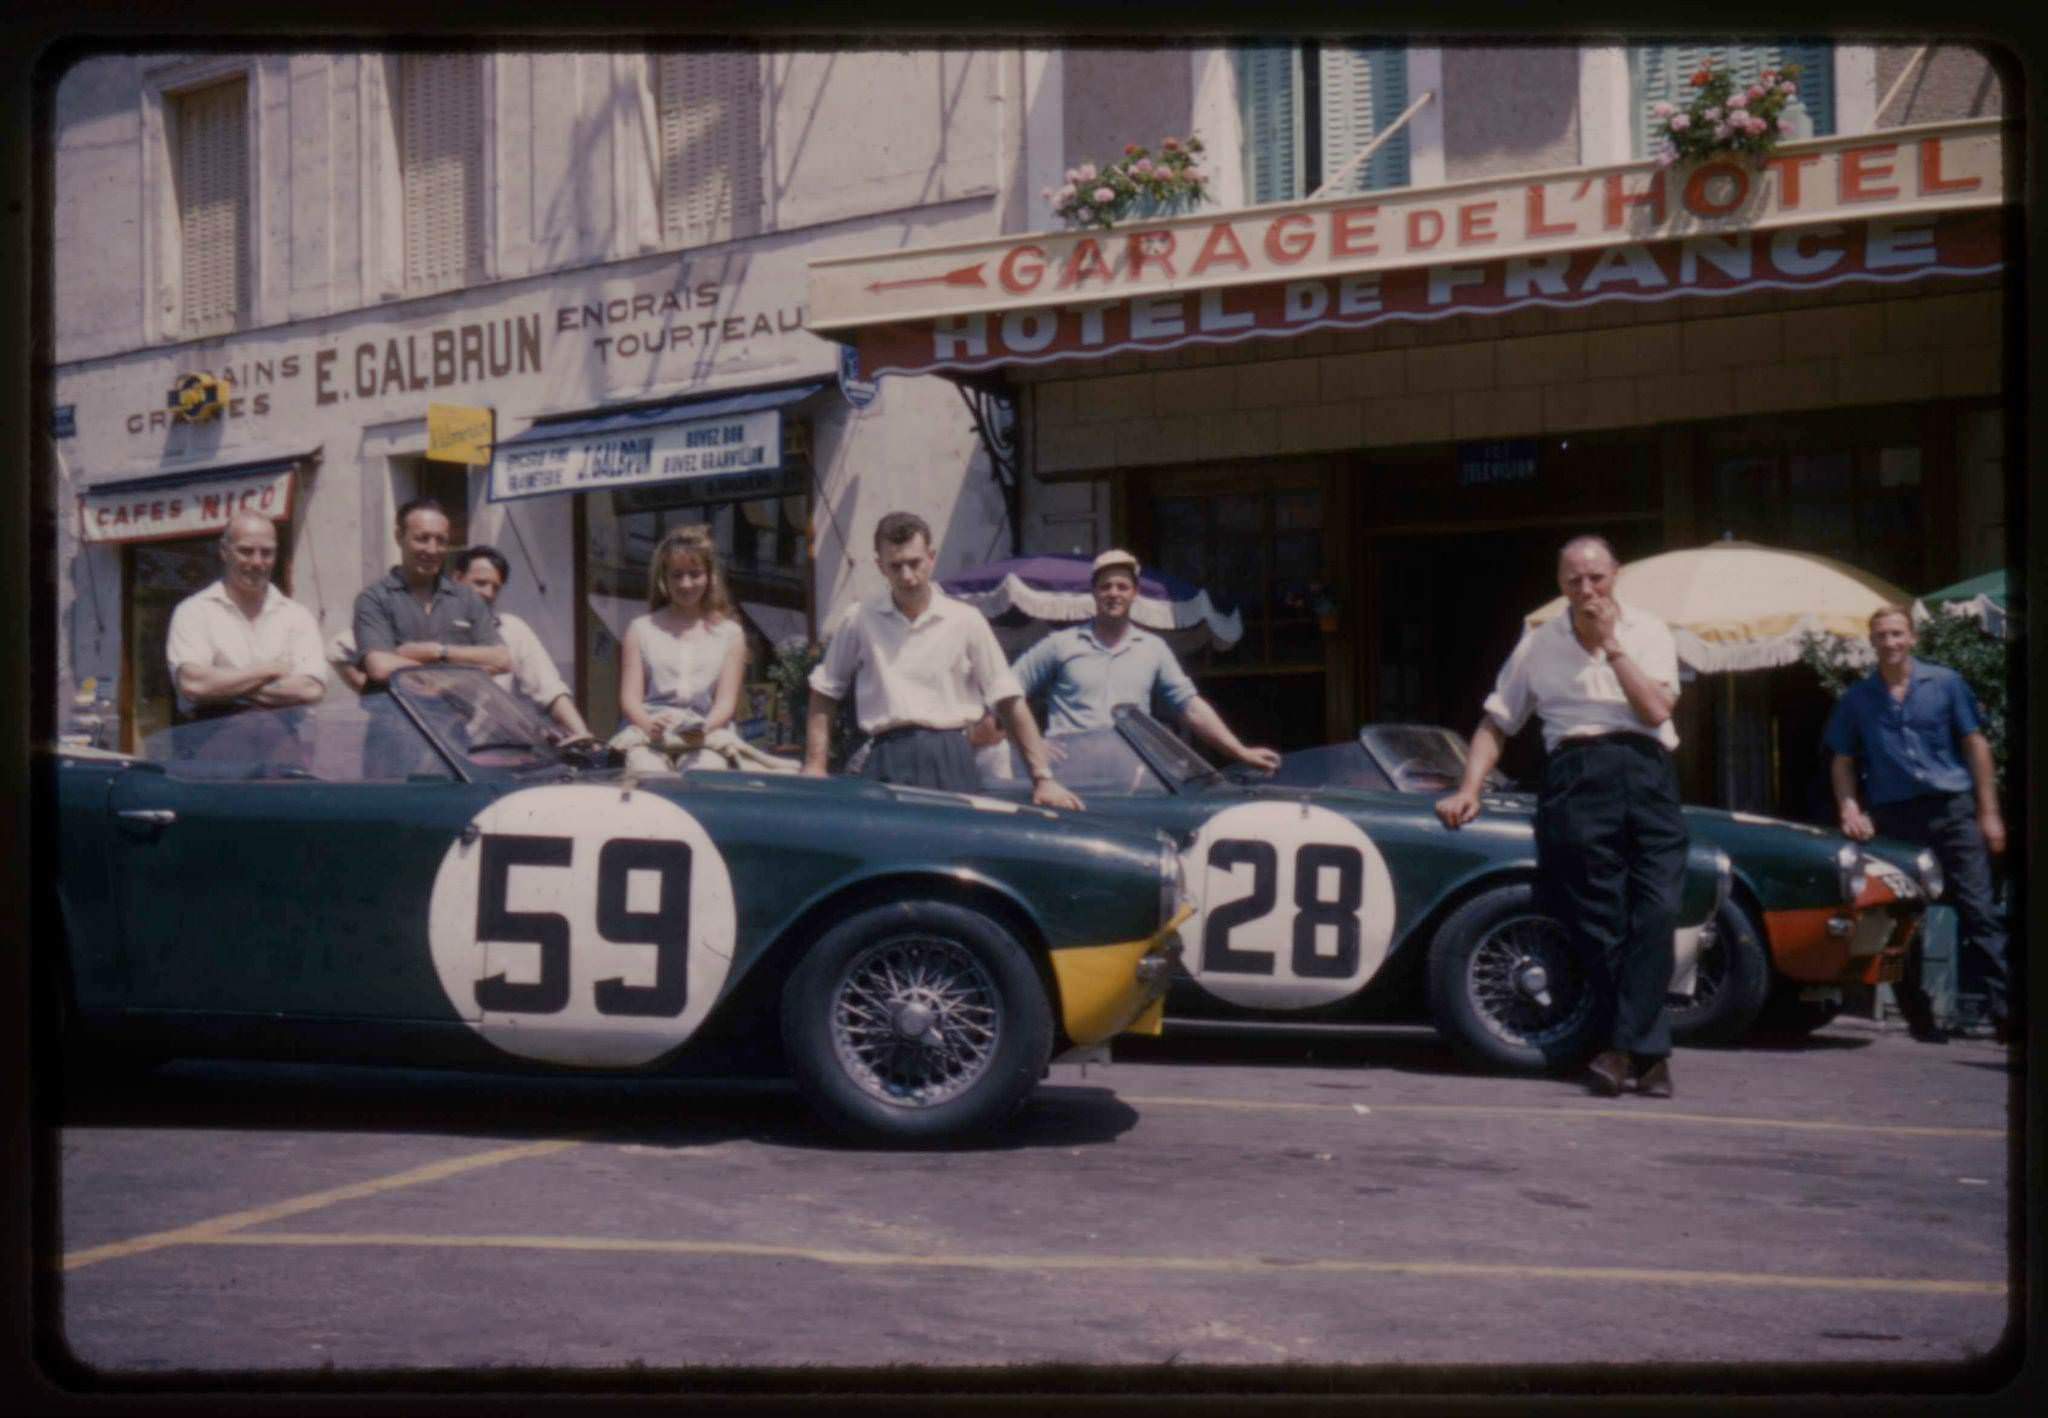 Triumph At Le Mans Is A 1961 Film Produced By As Showreel For The Company And Their Efforts Famous French Endurance Racing Circuit